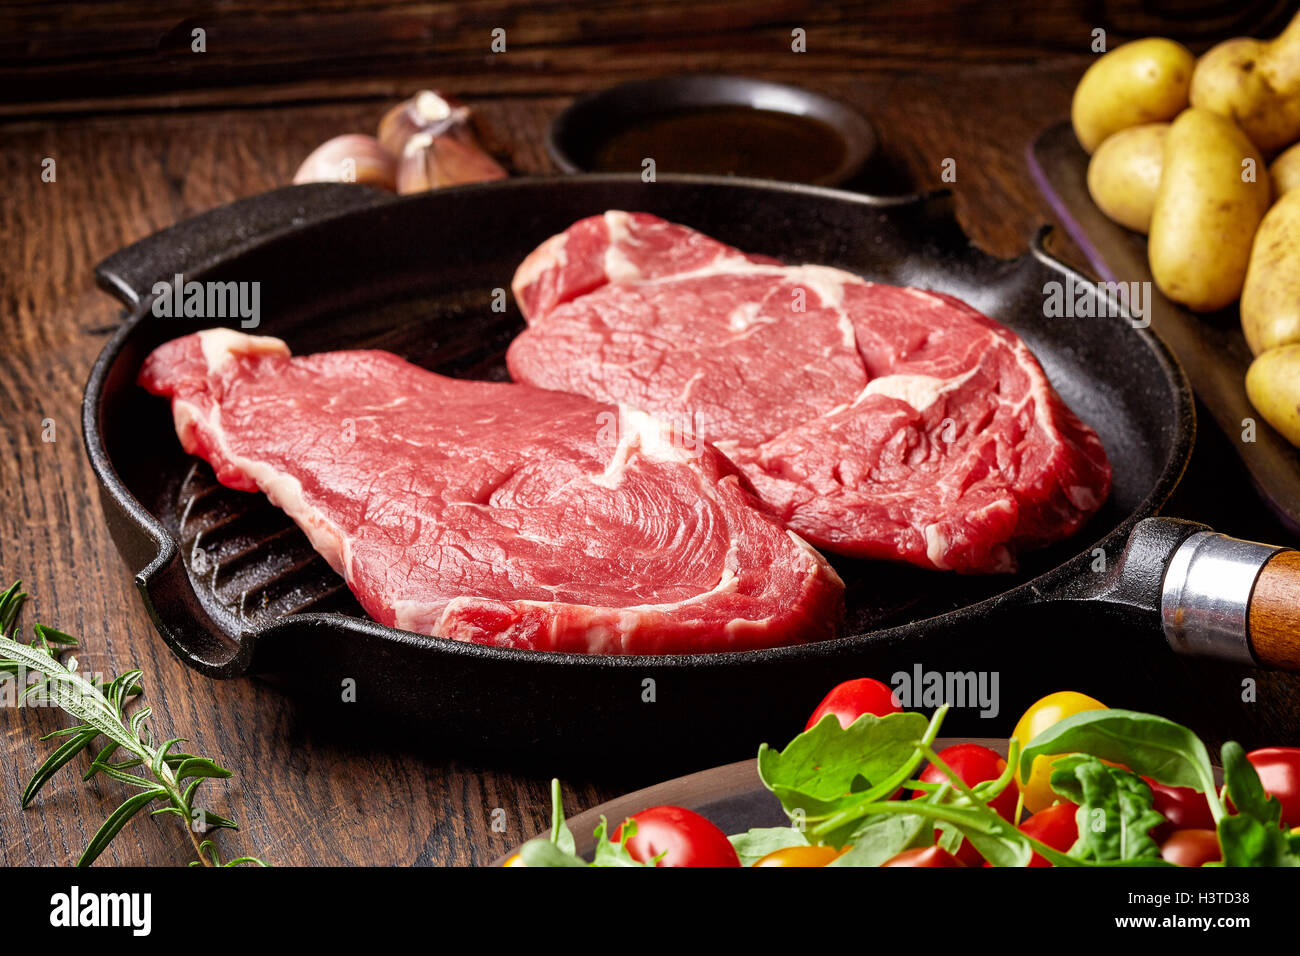 Raw beef steak on grill pan, potatoes, spices and tomatoes on wooden table - Stock Image